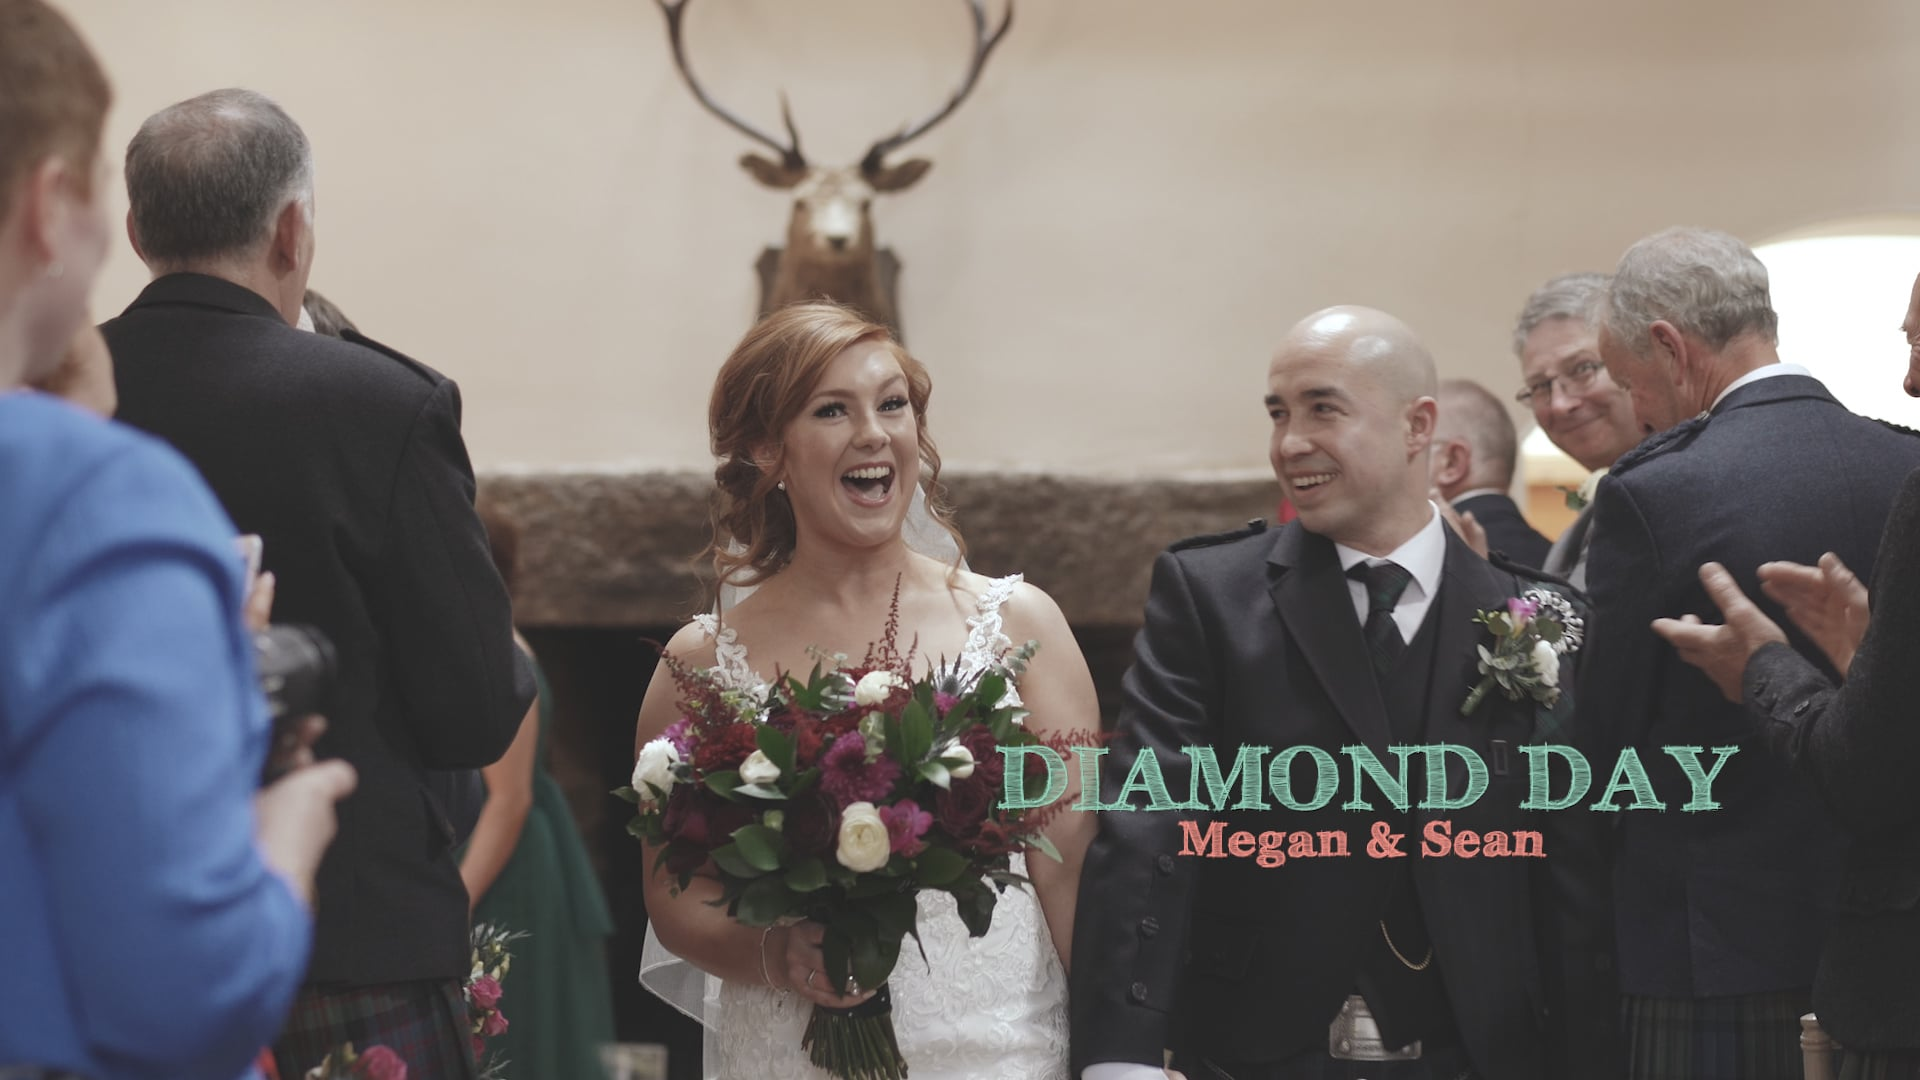 Diamond Day by Megan and Sean